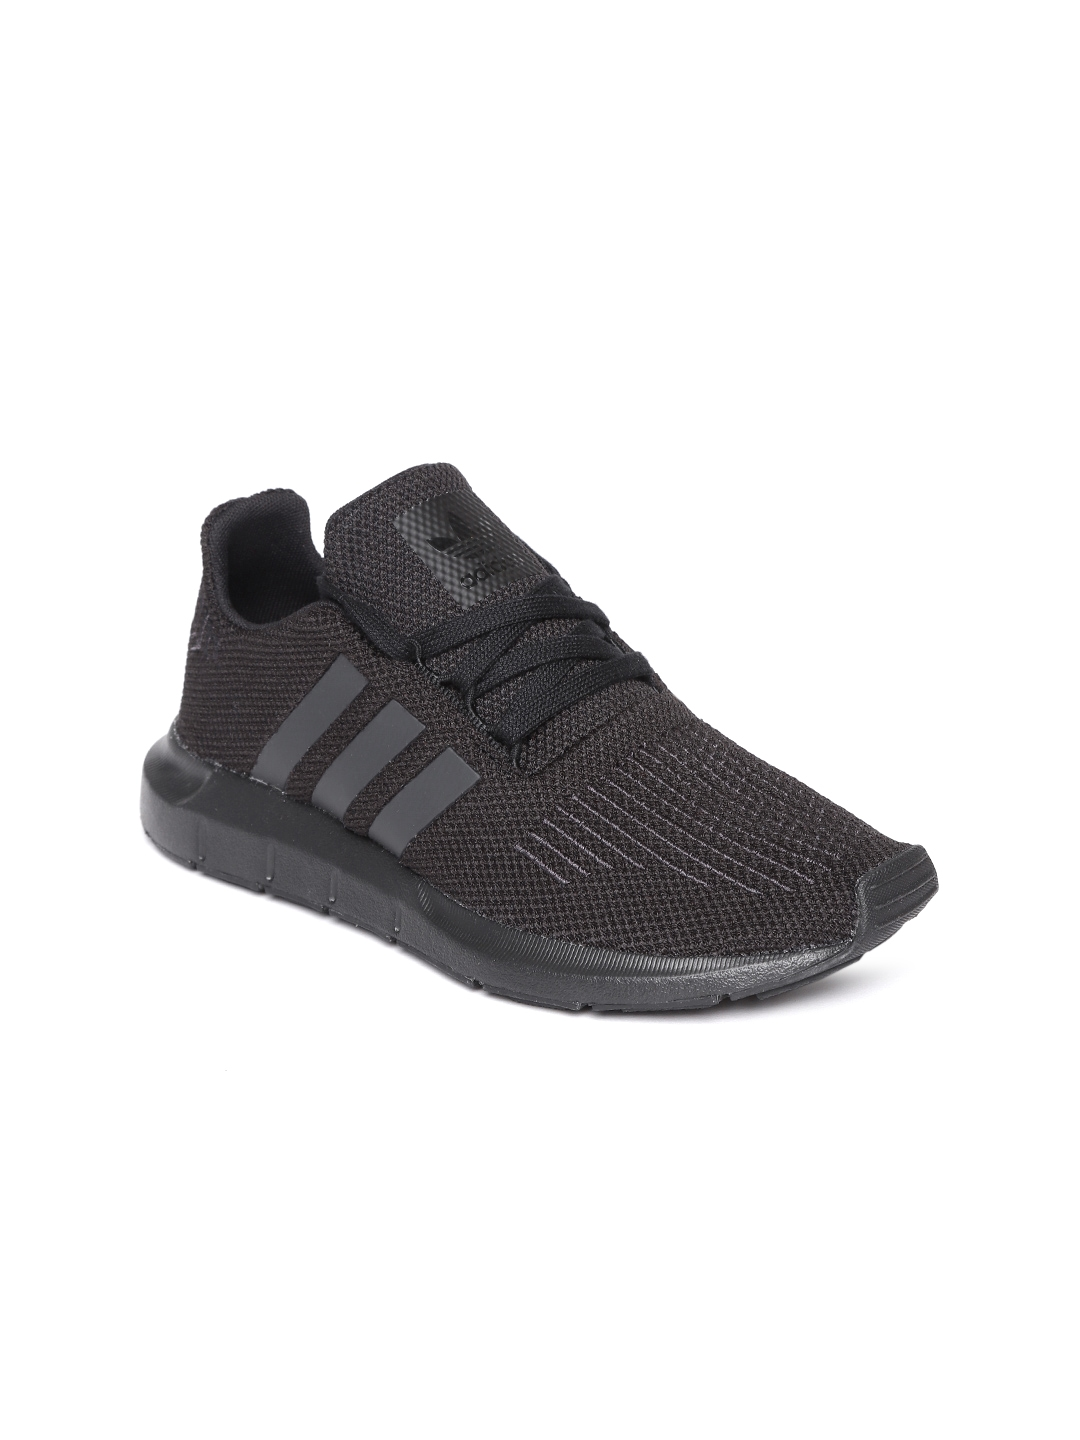 5c36578ec Buy ADIDAS Originals Kids Black Swift Run Sneakers - Casual Shoes ...